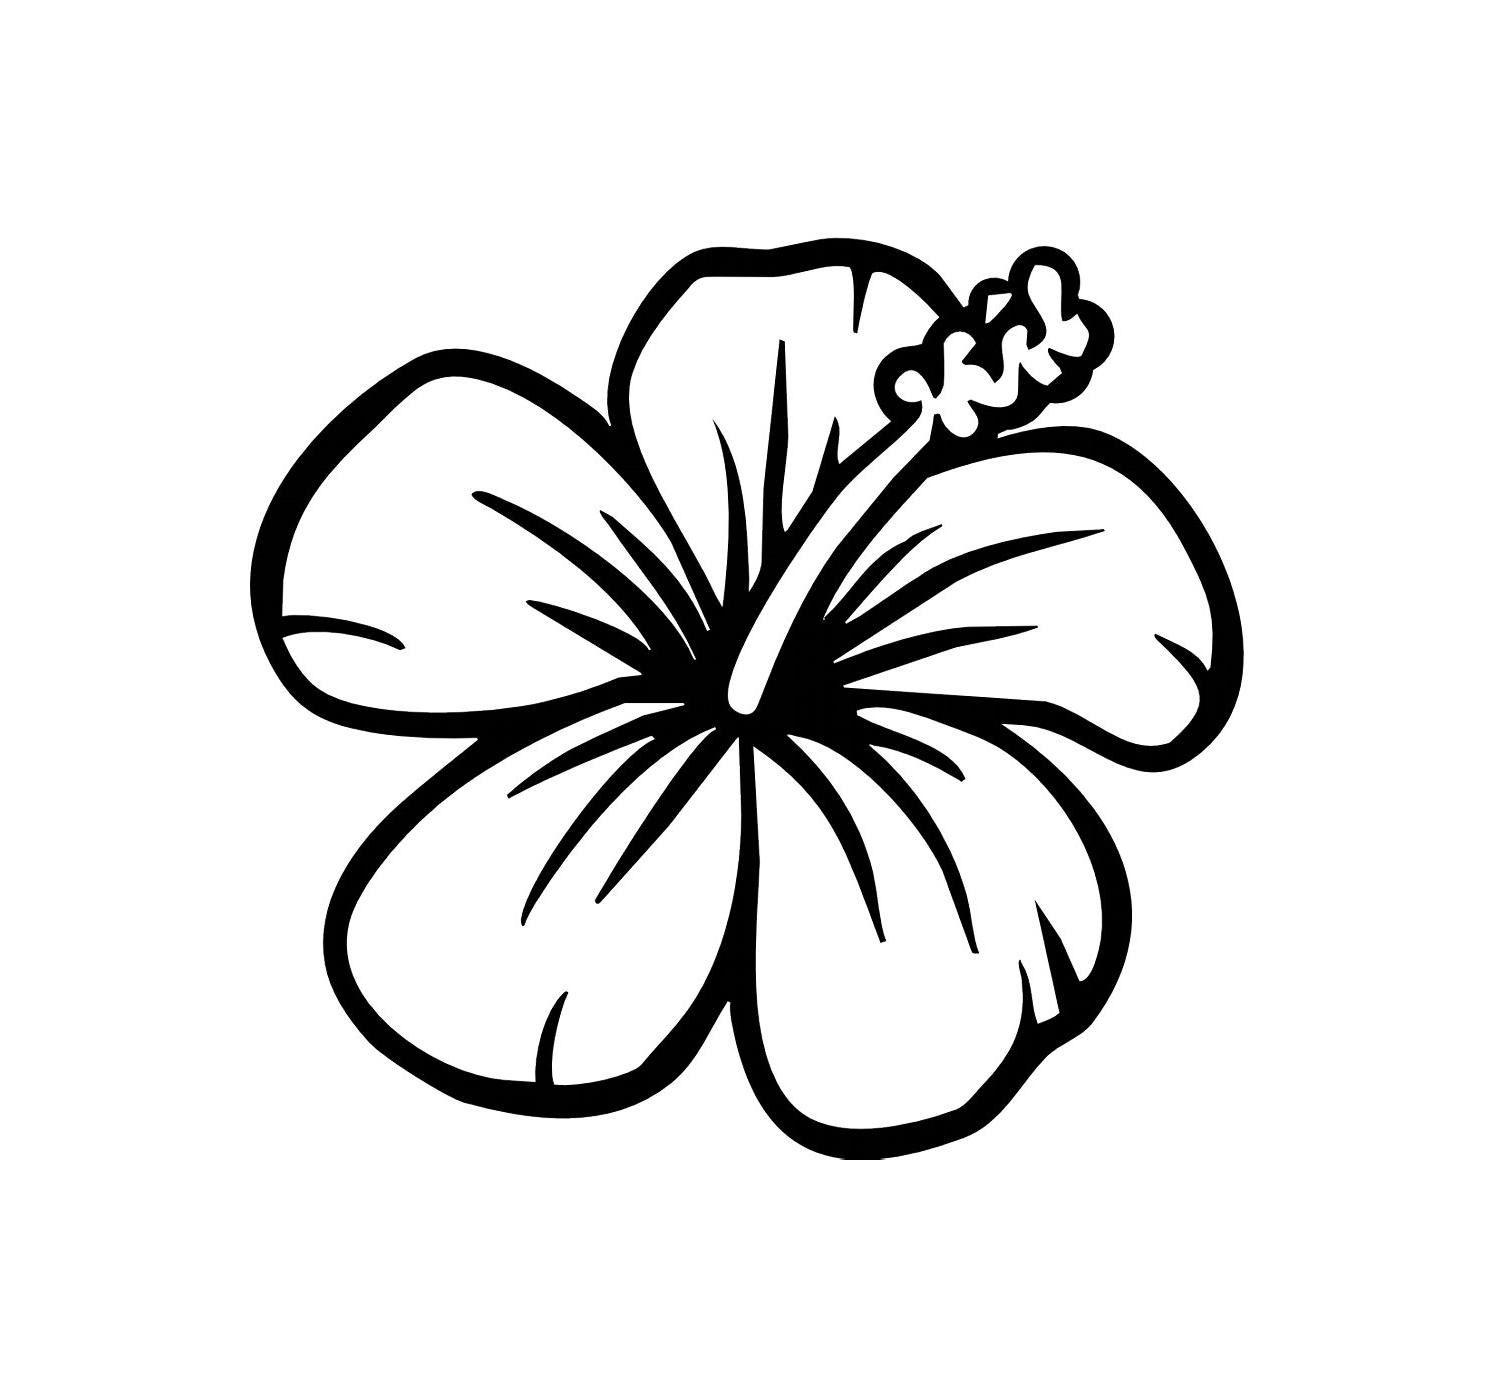 Pin by kilana baird on drawing ideas pinterest cricut tattoo simple hibiscus drawing how to draw a blue hib hawaiian luau party hibiscus flowers izmirmasajfo Images